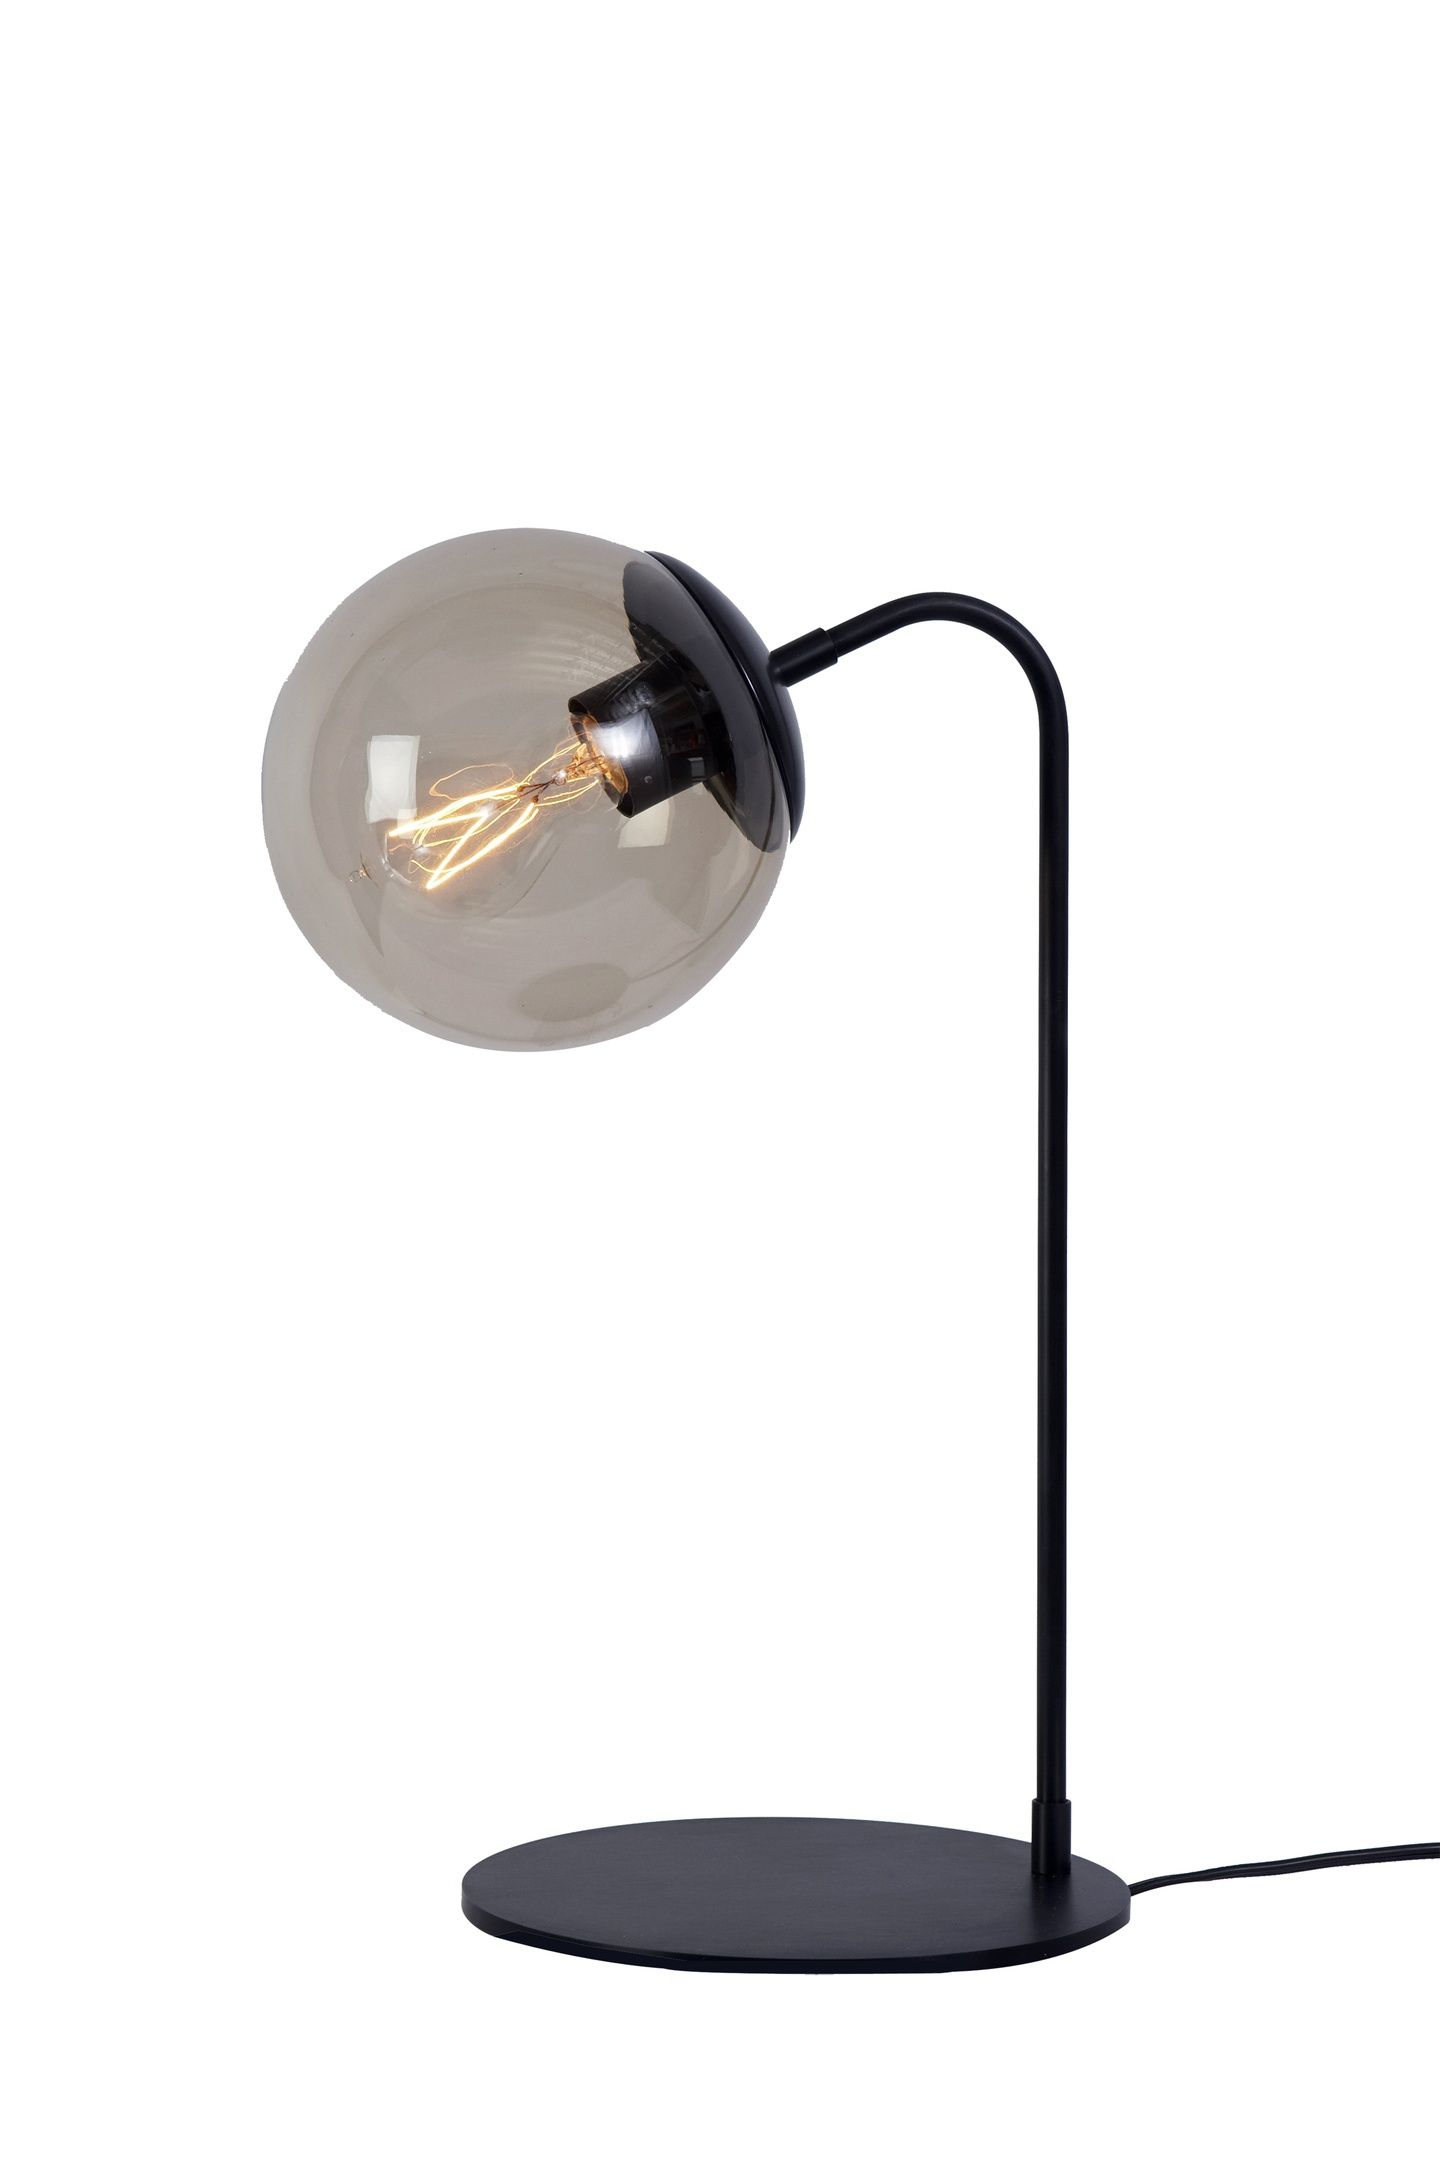 ECC represents the worldu0027s leading lighting and furniture brands and brings these exclusively to New Zealand.  sc 1 st  Pinterest & ECC represents the worldu0027s leading lighting and furniture brands and ...